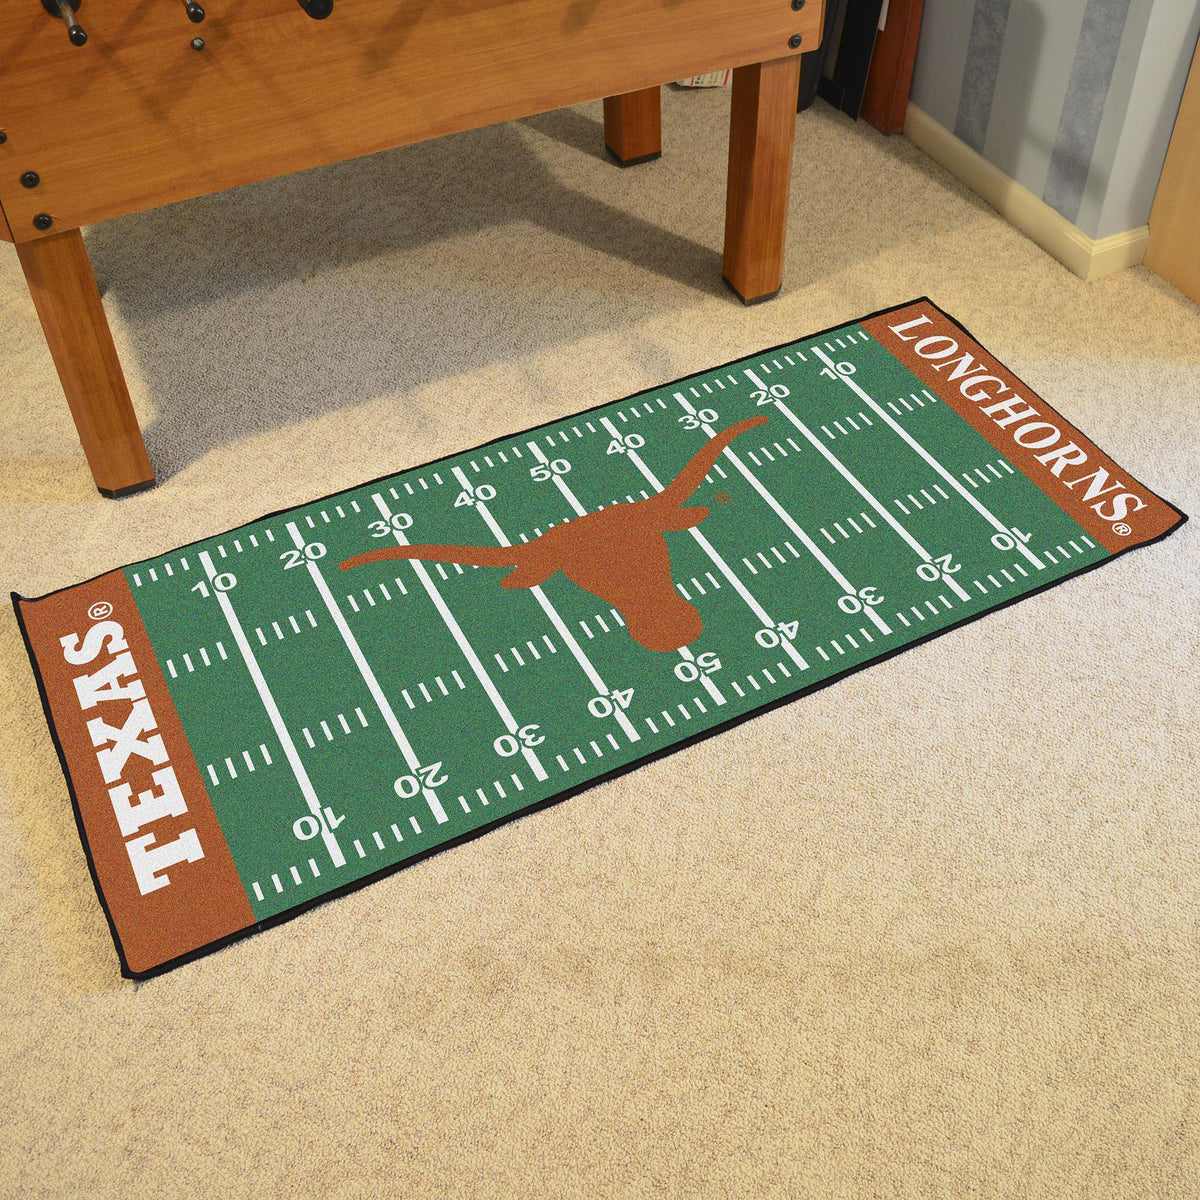 Collegiate - Football Field Runner Collegiate Mats, Rectangular Mats, Football Field Runner, Collegiate, Home Fan Mats Texas